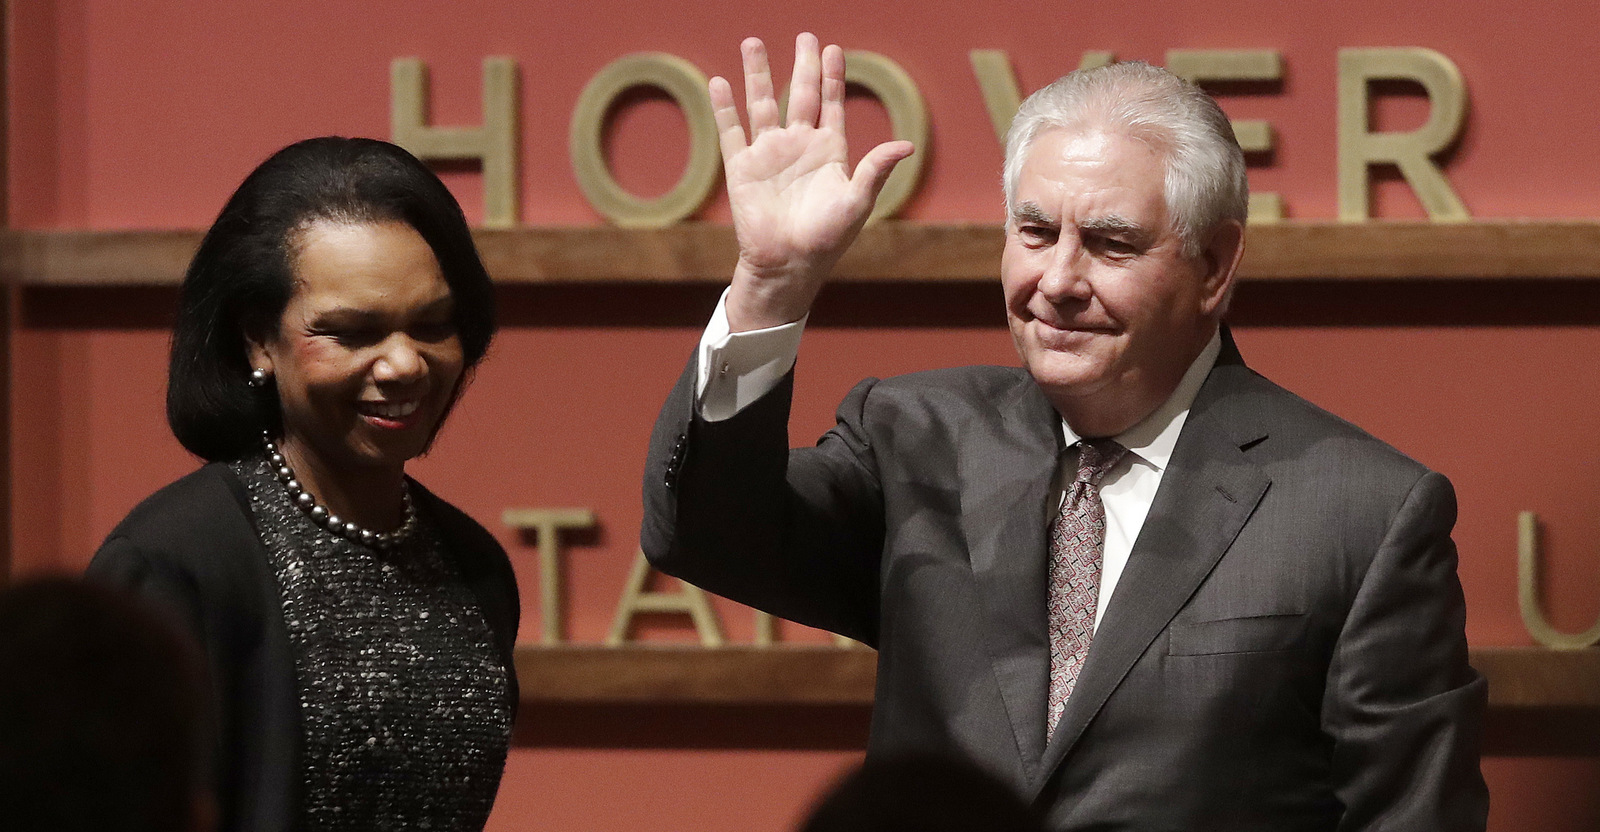 Secretary of State Rex Tillerson, right, waves after speaking to the Hoover Institution at Stanford University with former Secretary of State Condoleeza Rice, left, Jan. 17, 2018. Tillerson signaled the U.S. military will remain in Syria for the foreseeable future. (AP/Jeff Chiu)